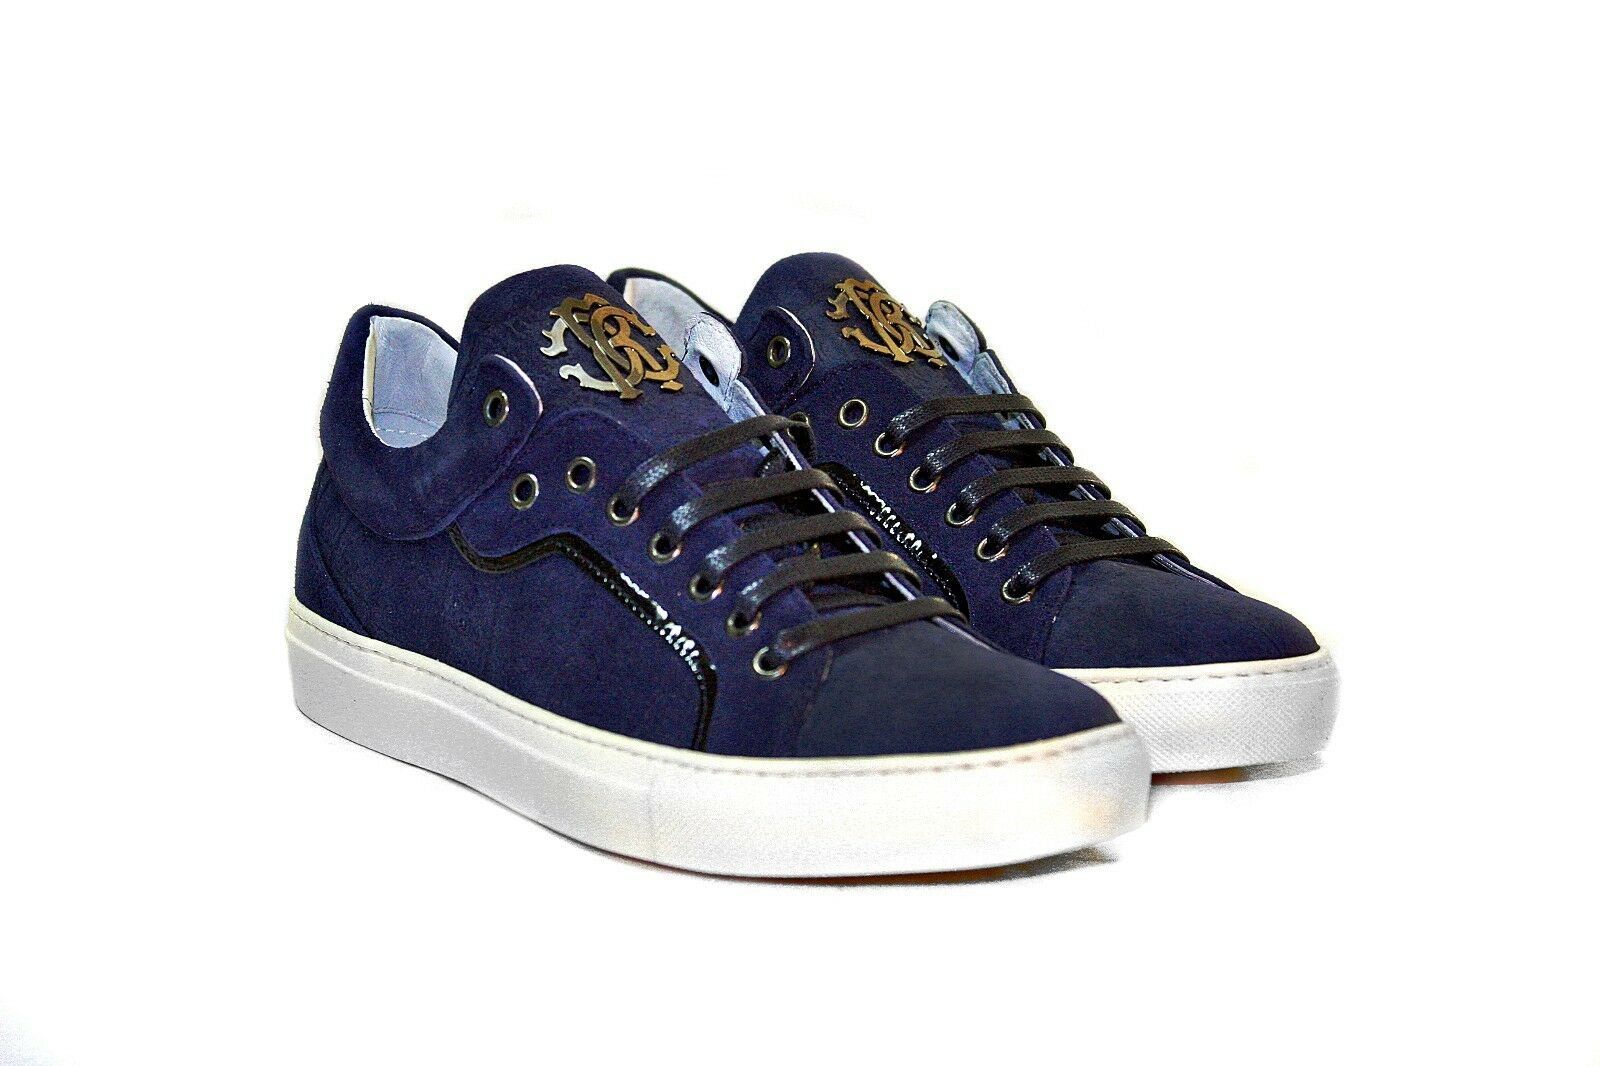 Roberto Cavalli 05469 Men's Blue Suede Leather Sneakers